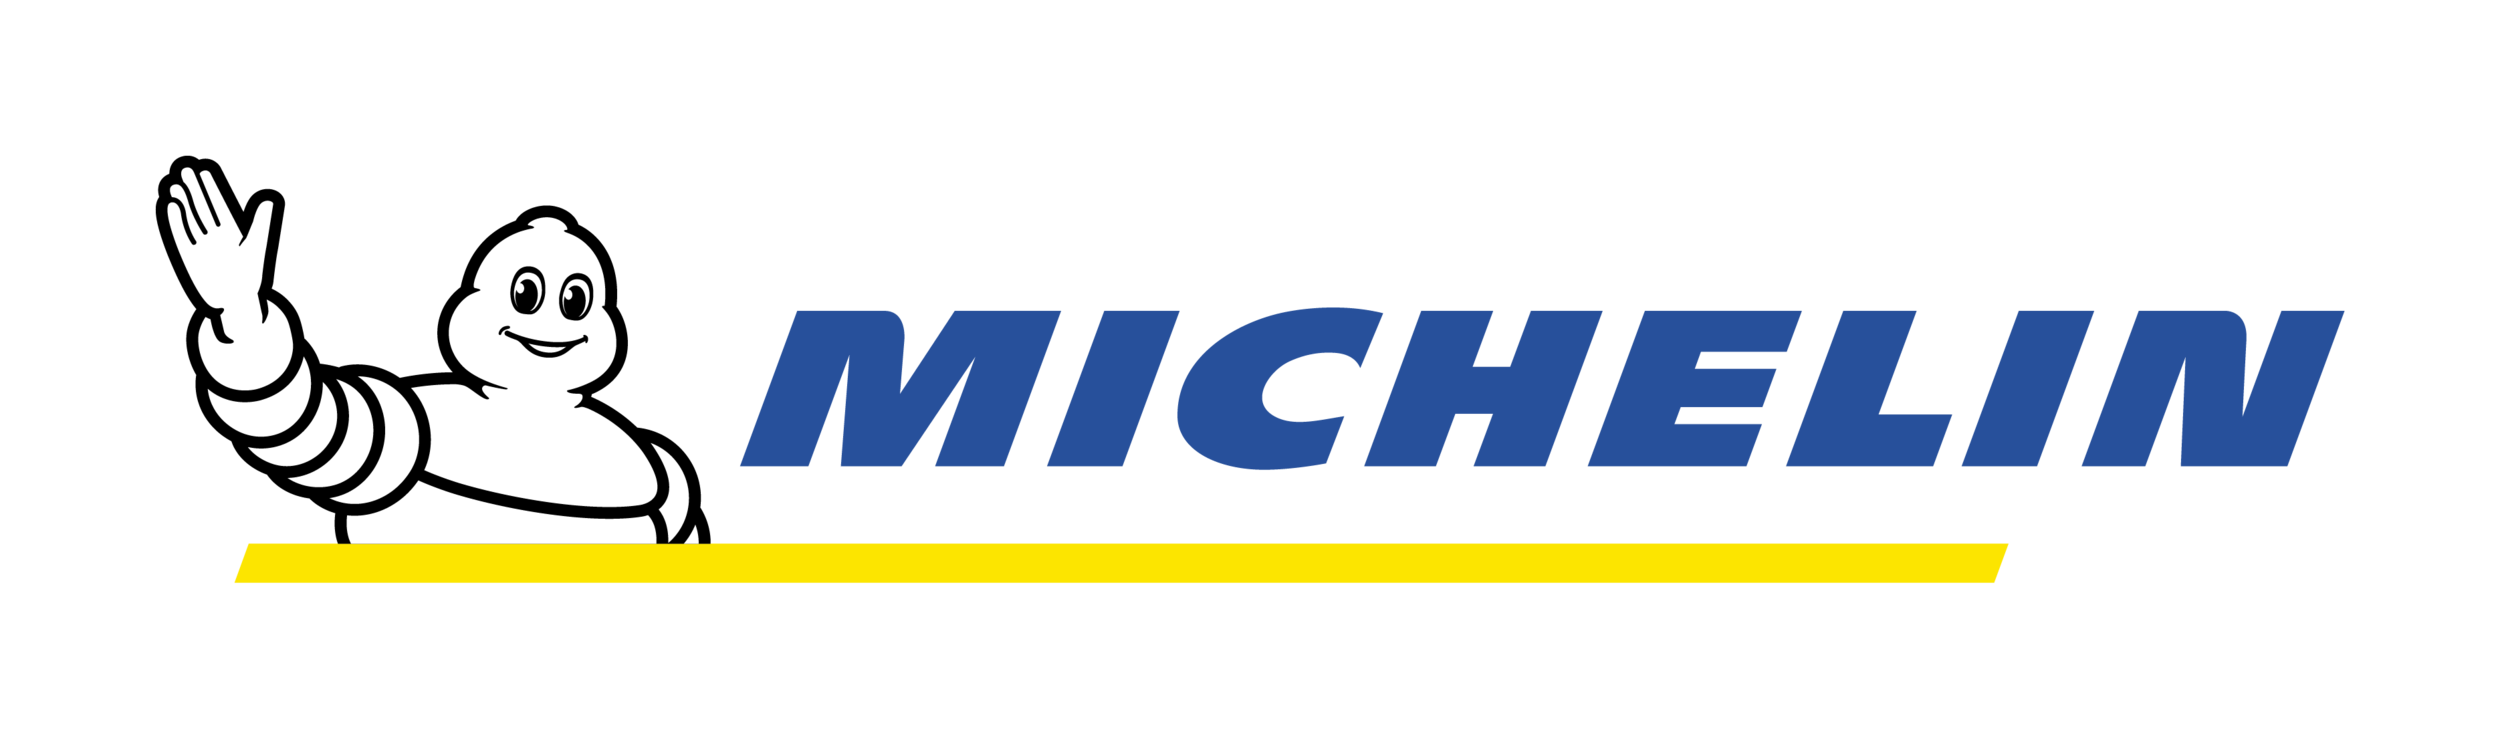 Michelin_C_H_WhiteBG_RGB_0703-01[1].png